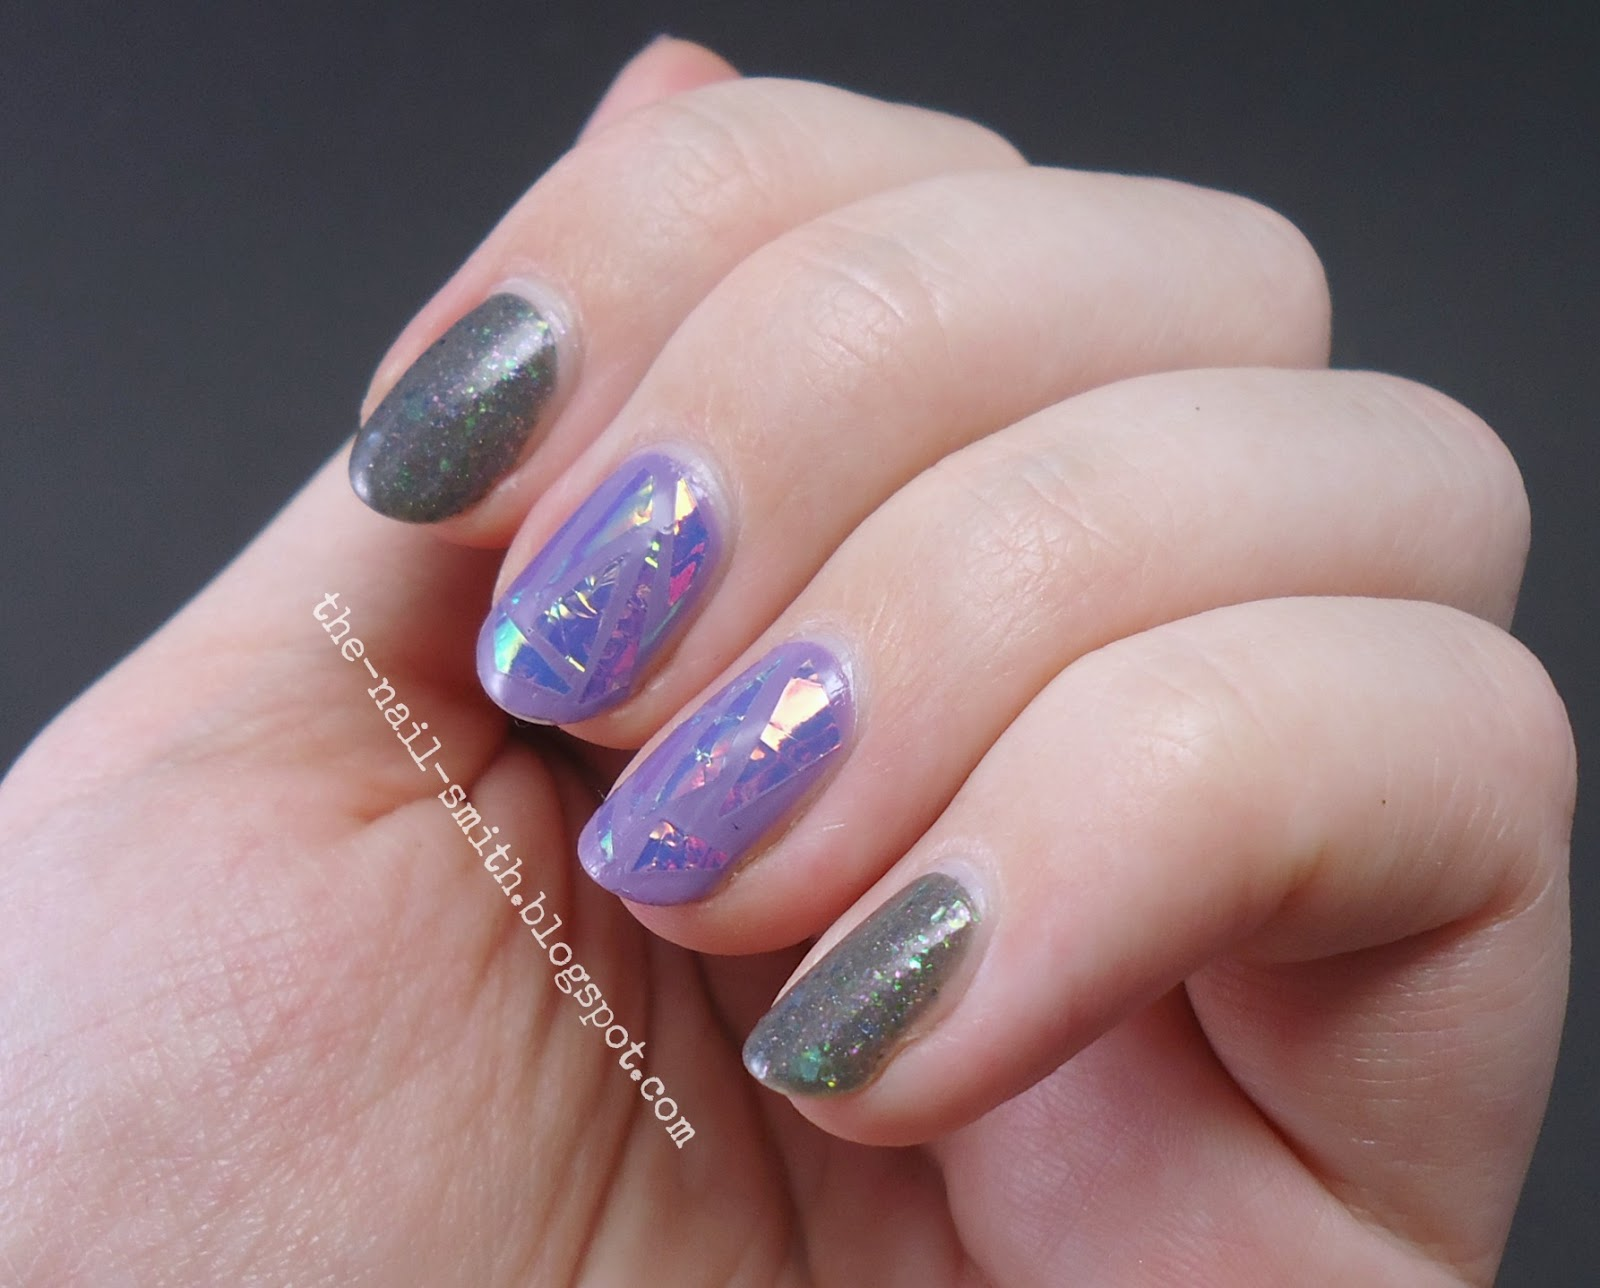 The Nail Smith: Shattered Glass Nail Art Trend